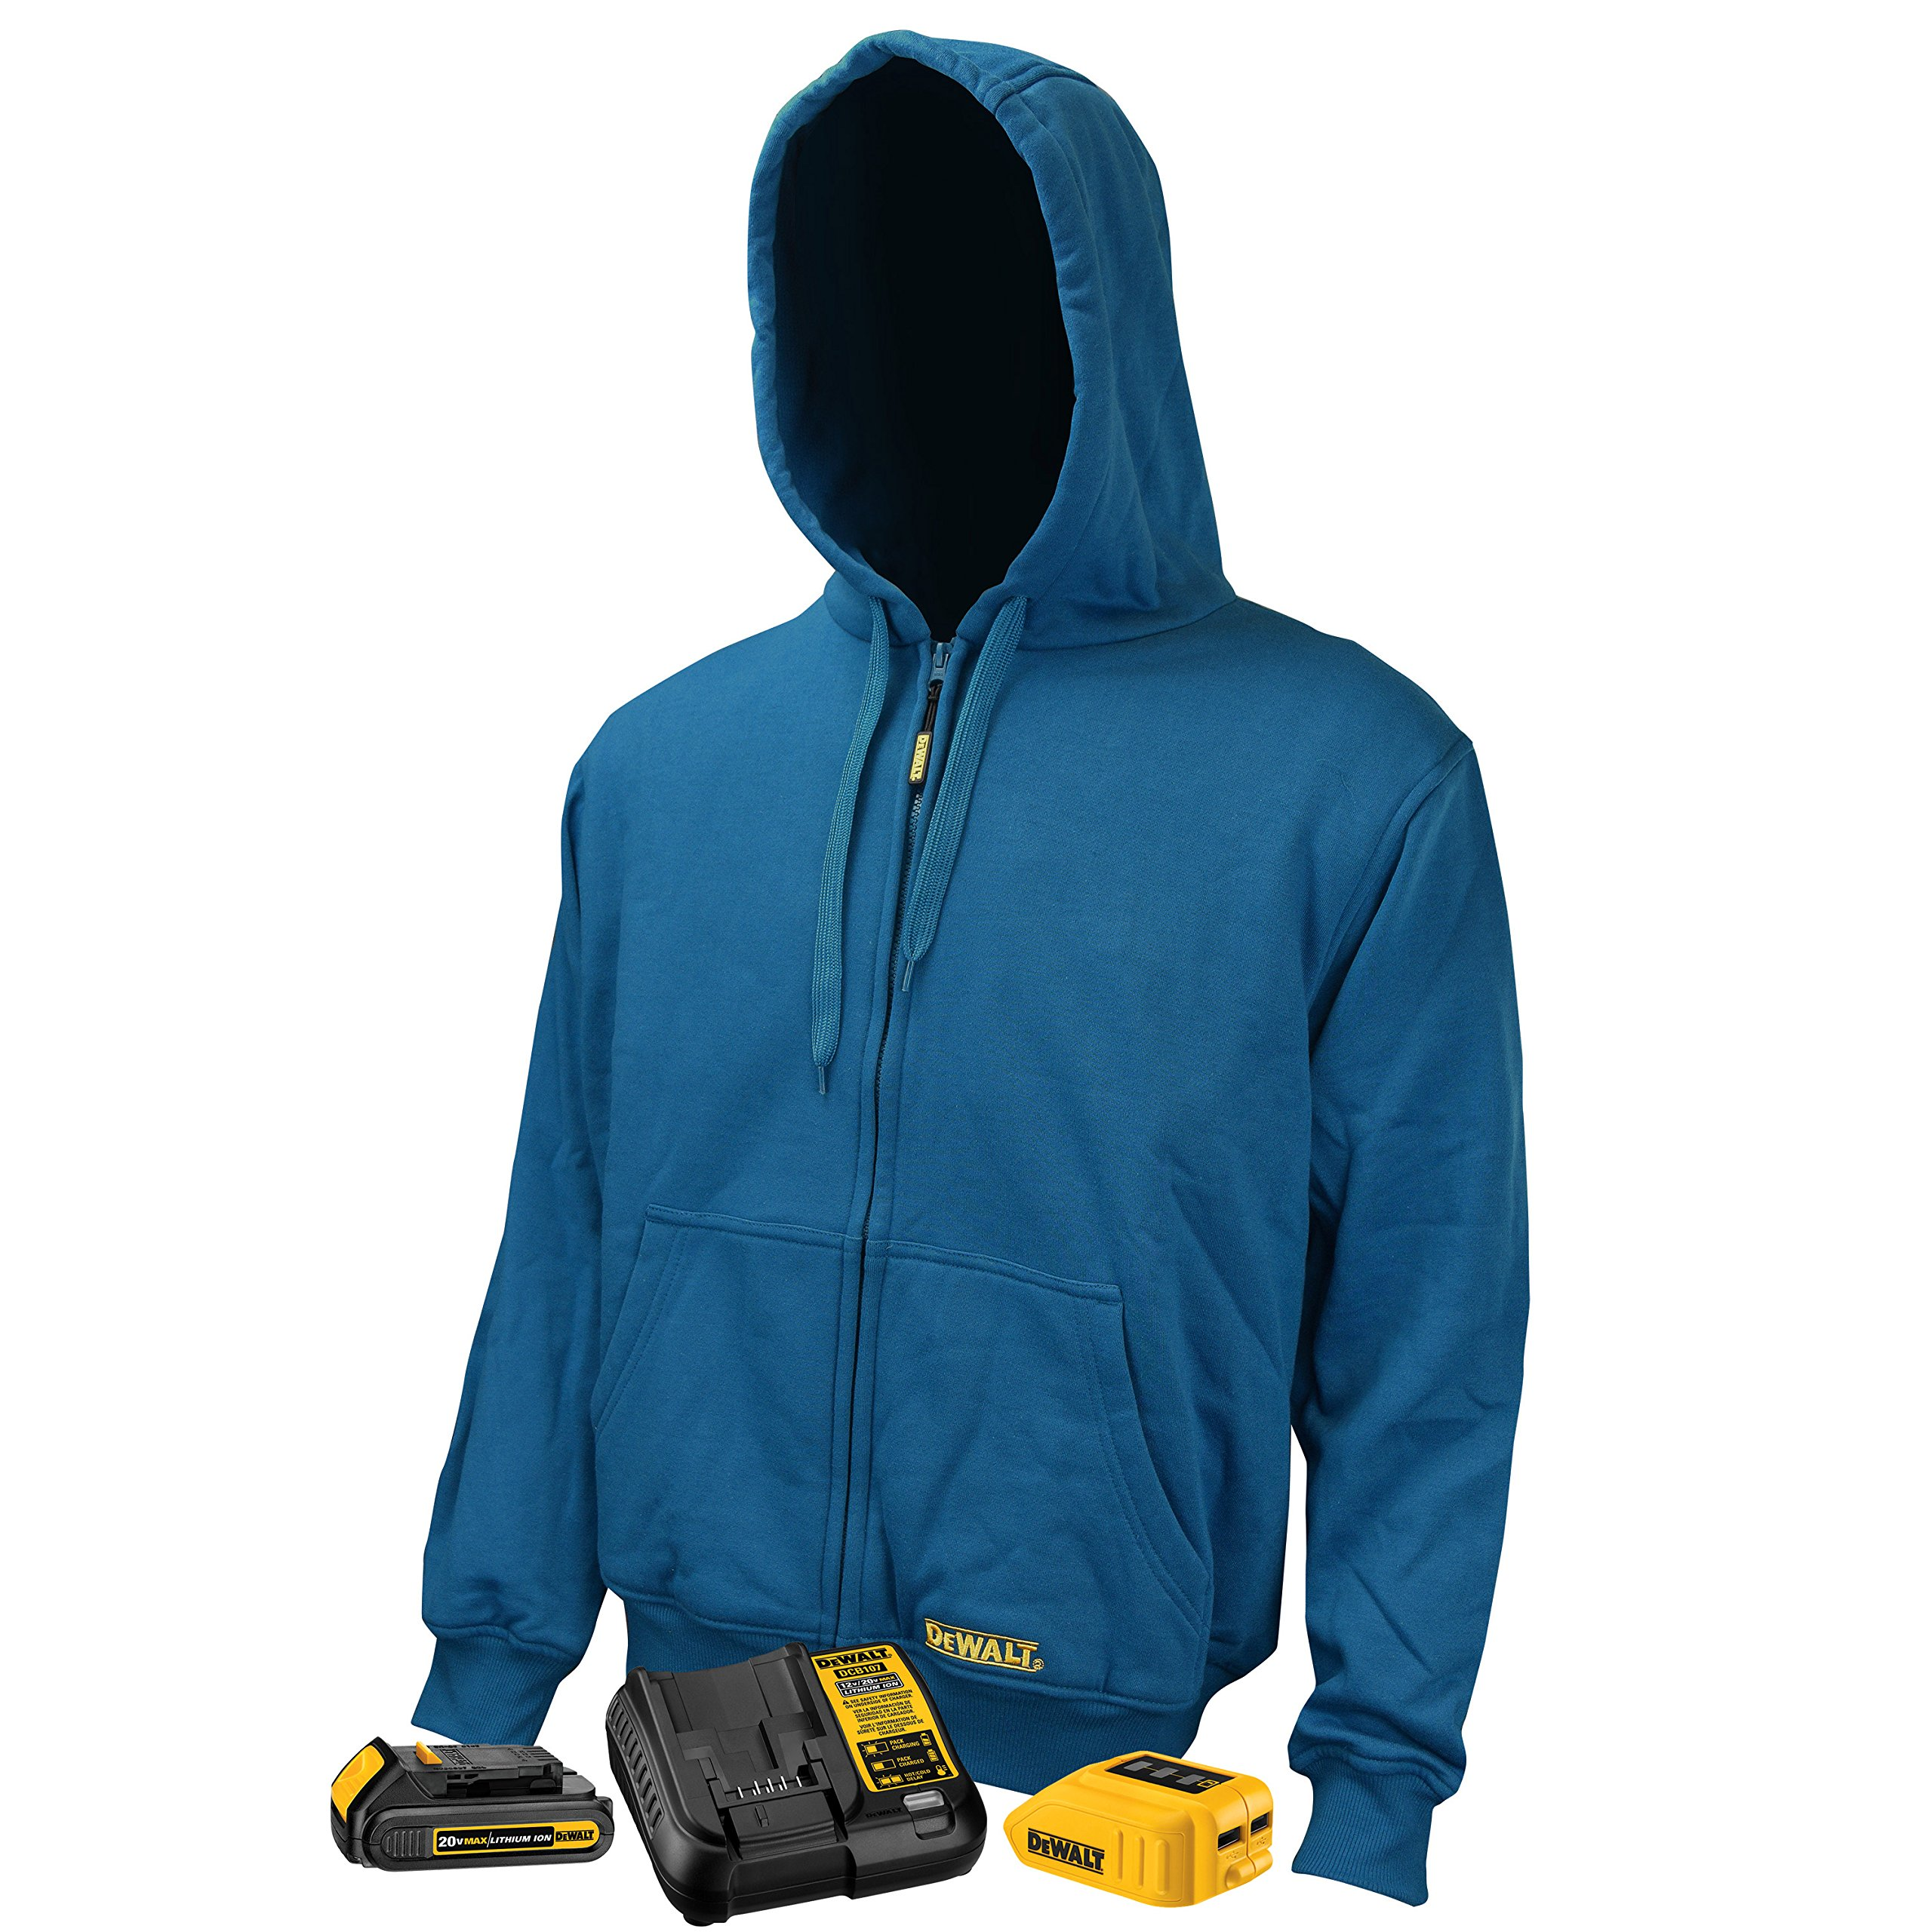 DeWALT DCHJ069C1 Unisex 3 Core Heated Fleece Hoodie with 20-Volt Lithium-Ion MAX Battery and Charger, Blue, Small